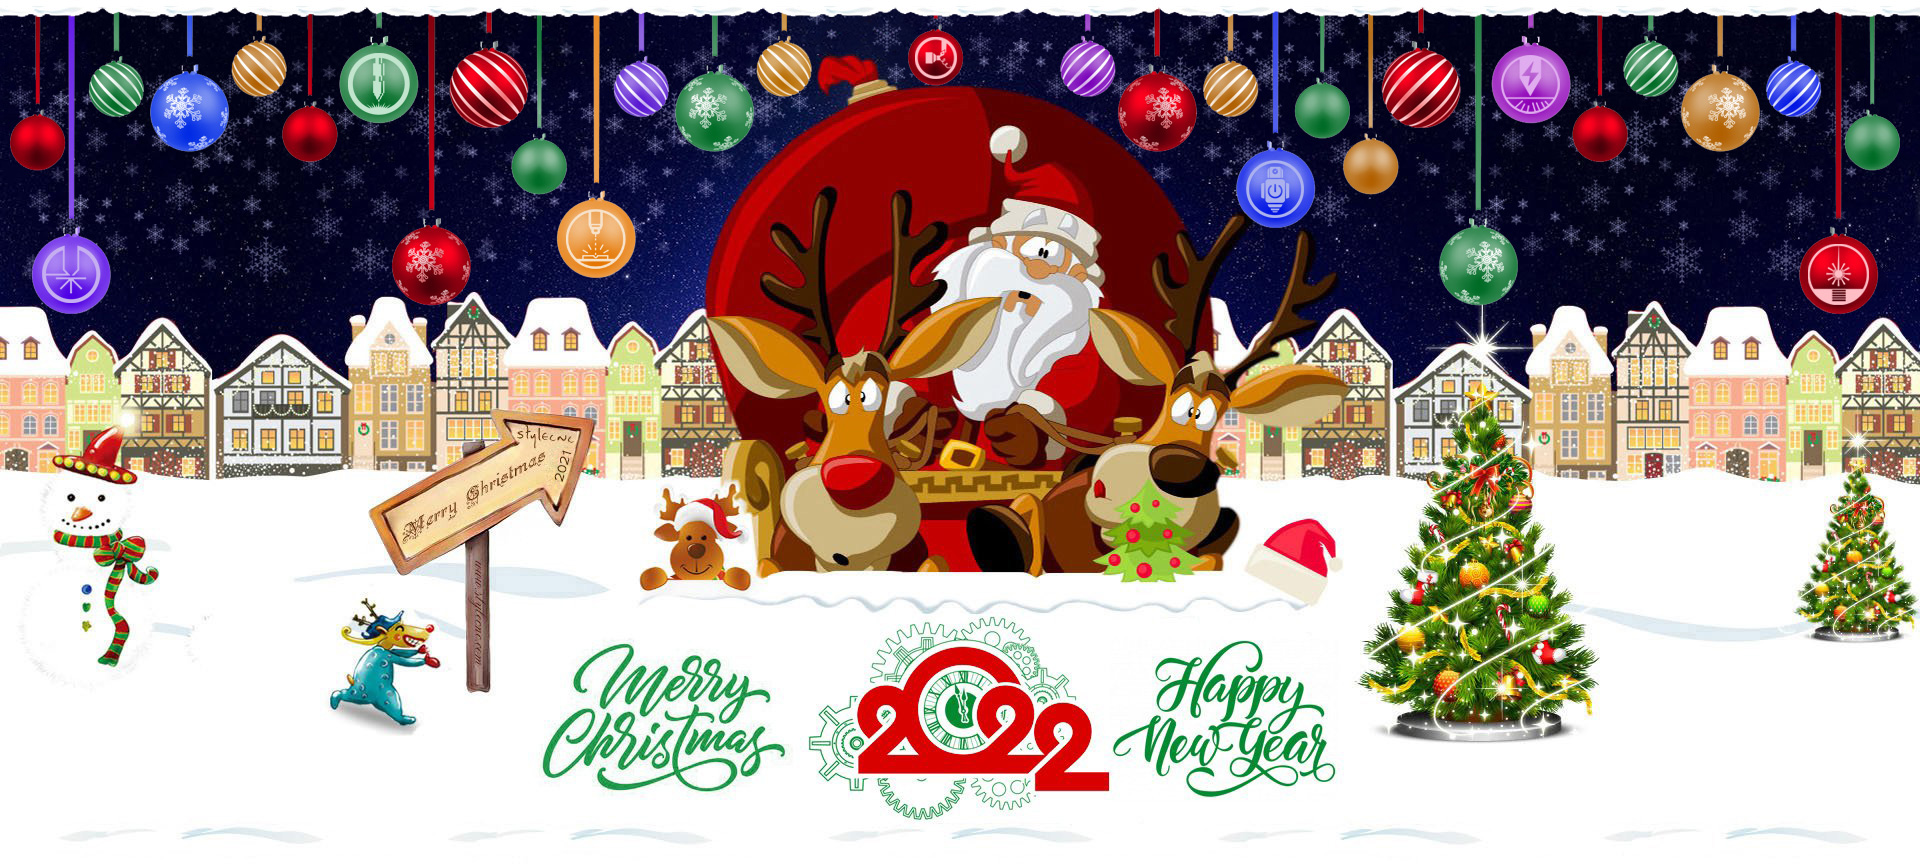 2018 Christmas Sales and Deals for CNC Router, Laser Cutter, Laser Engraver, Wood Lathe and Plasma Cutter